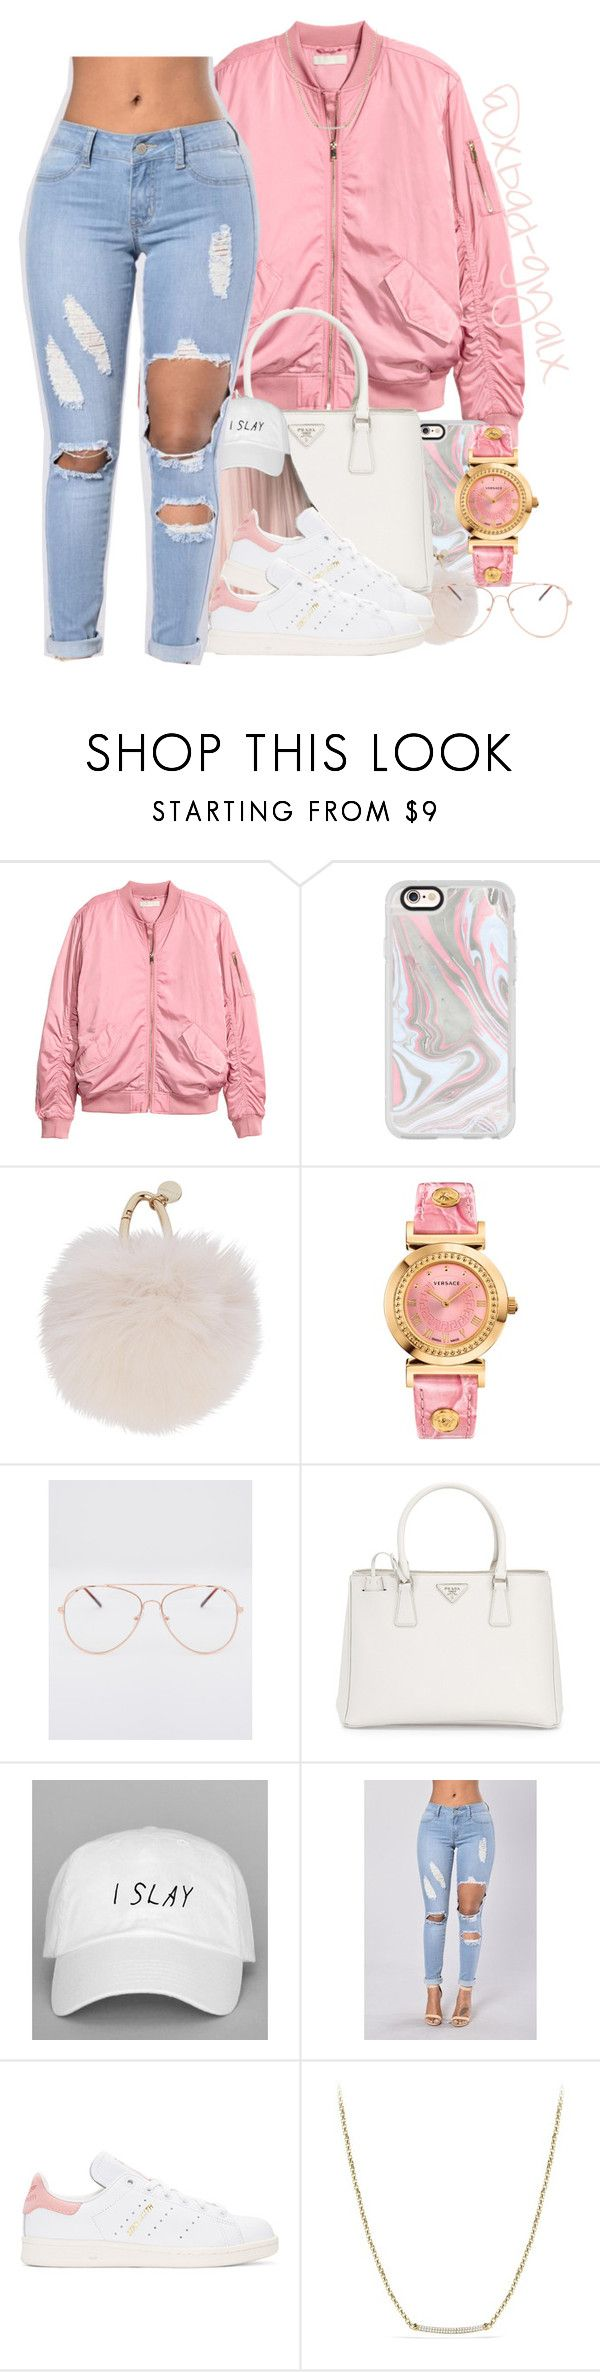 """$$$"" by xbad-gyalx ❤ liked on Polyvore featuring Casetify, Yves Salomon, Versace, Prada, adidas Originals and David Yurman"